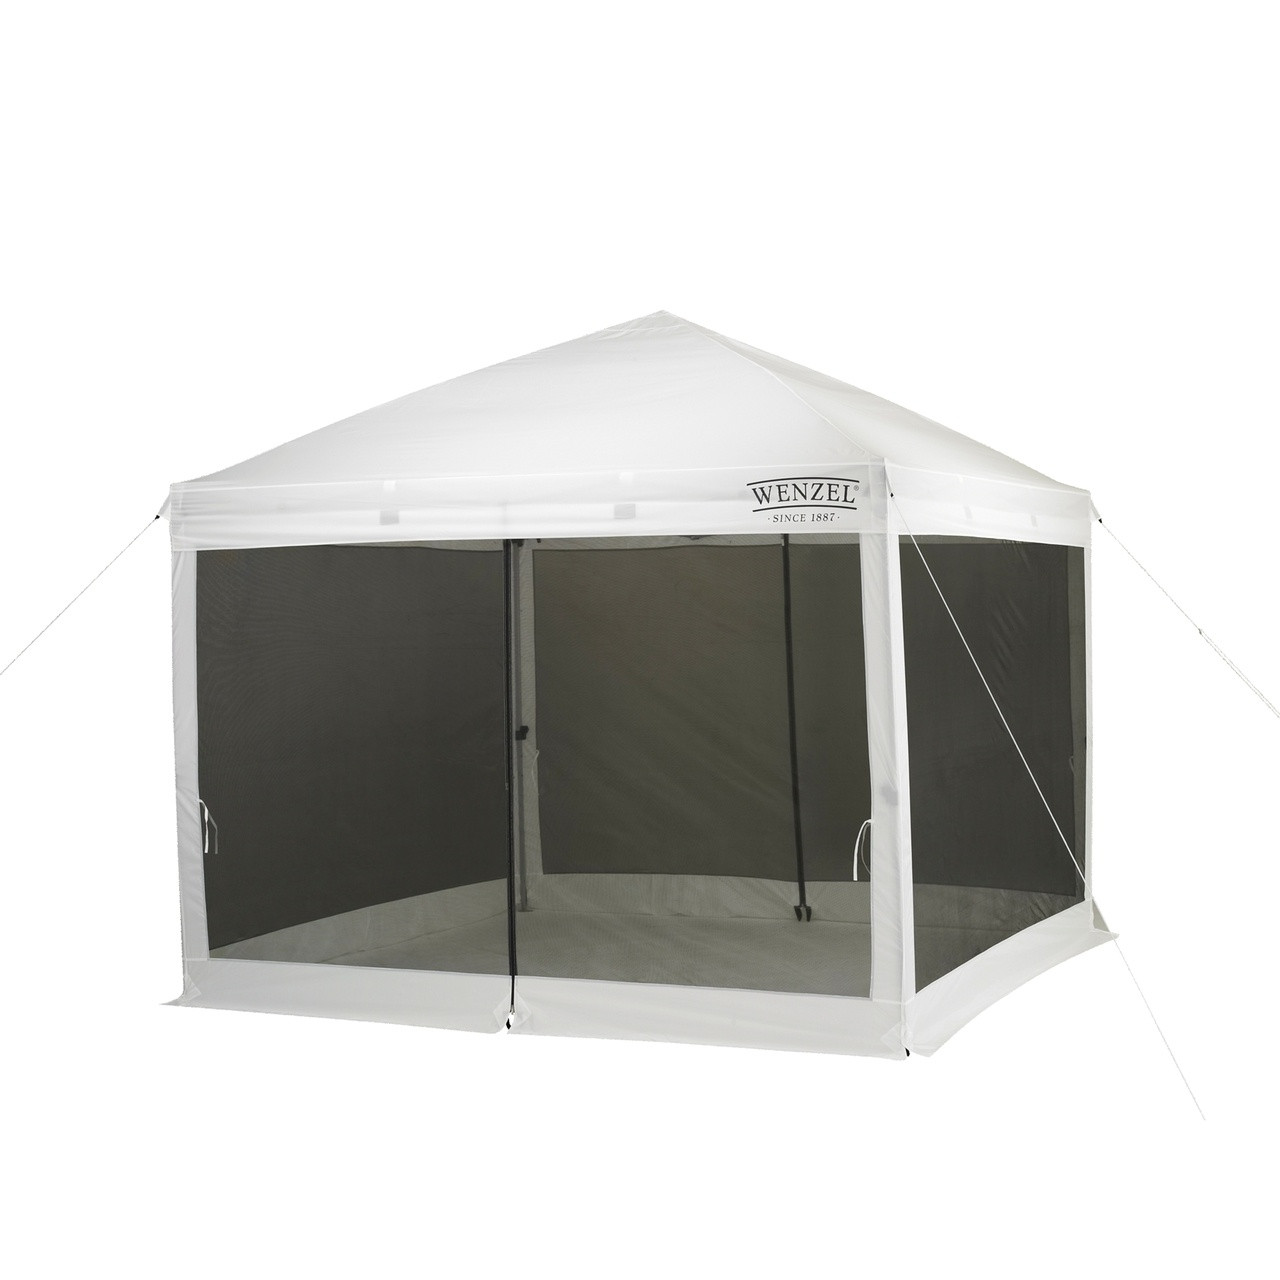 Wenzel Smartshade Screen House, white with black screens, setup with the guy lines extended